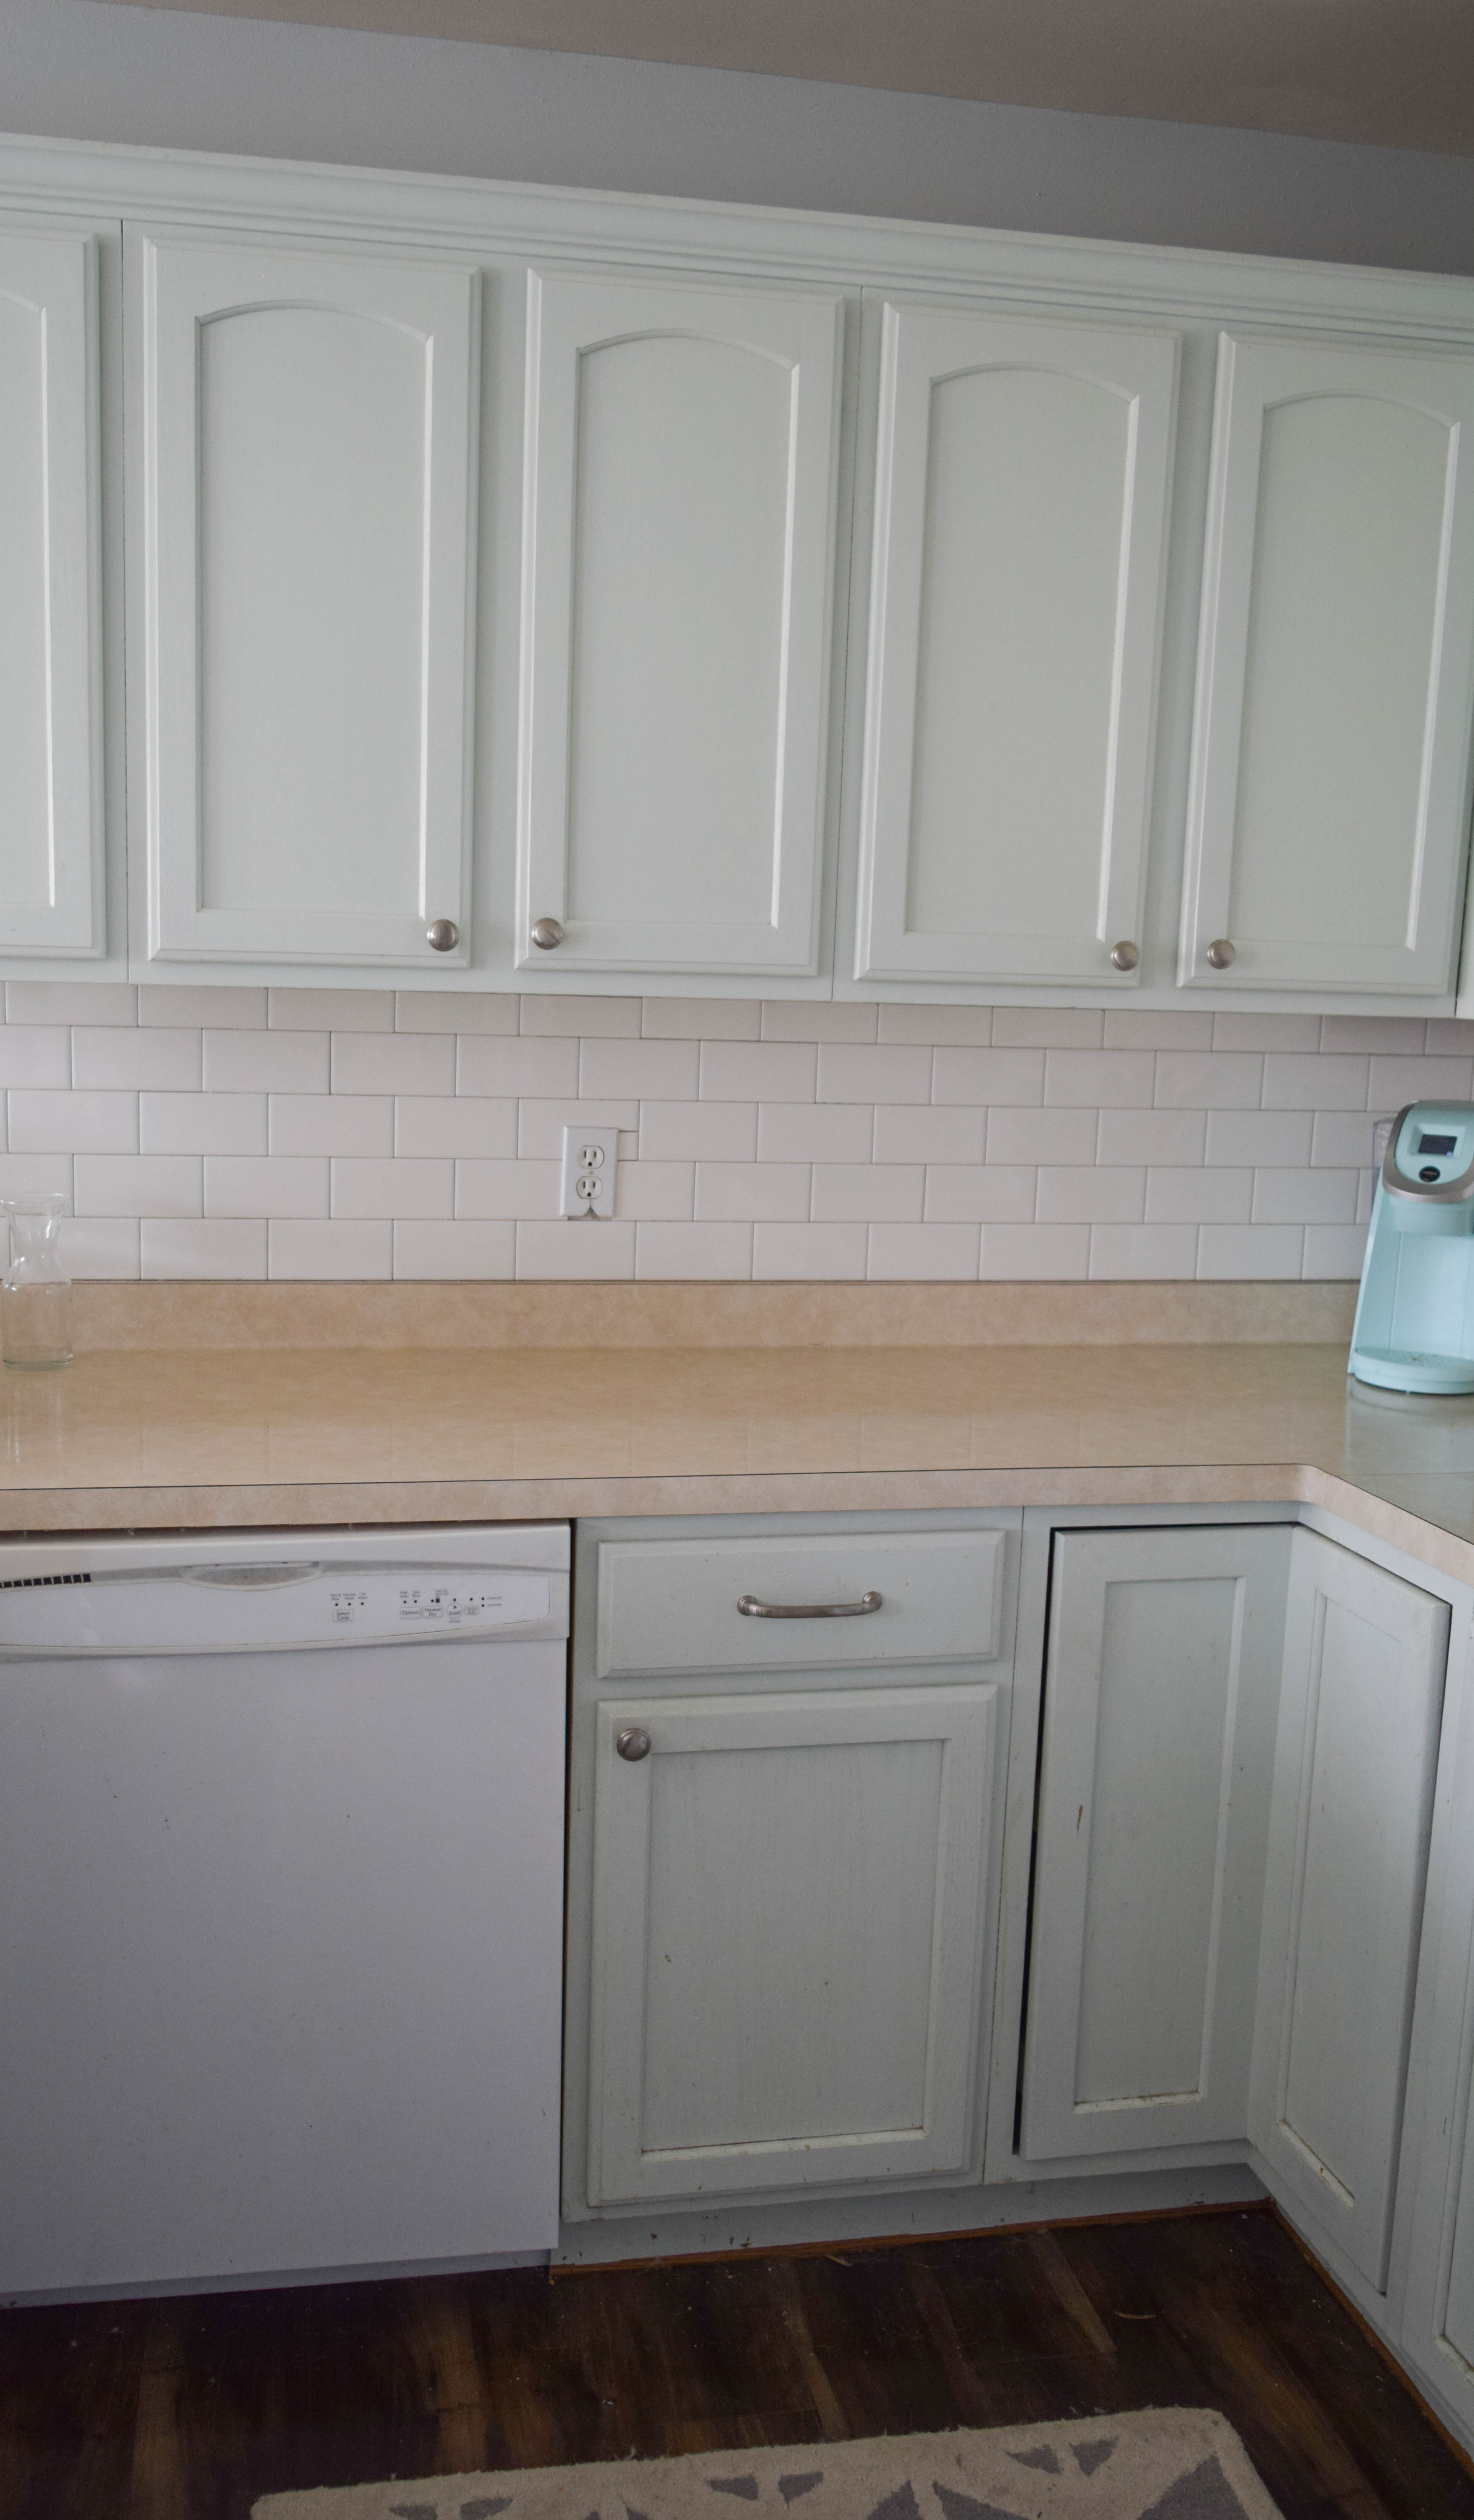 Painting Your Kitchen Cabinets Is No Small Undertaking: Improve A Small Kitchen With Small Updates And DIY Ideas